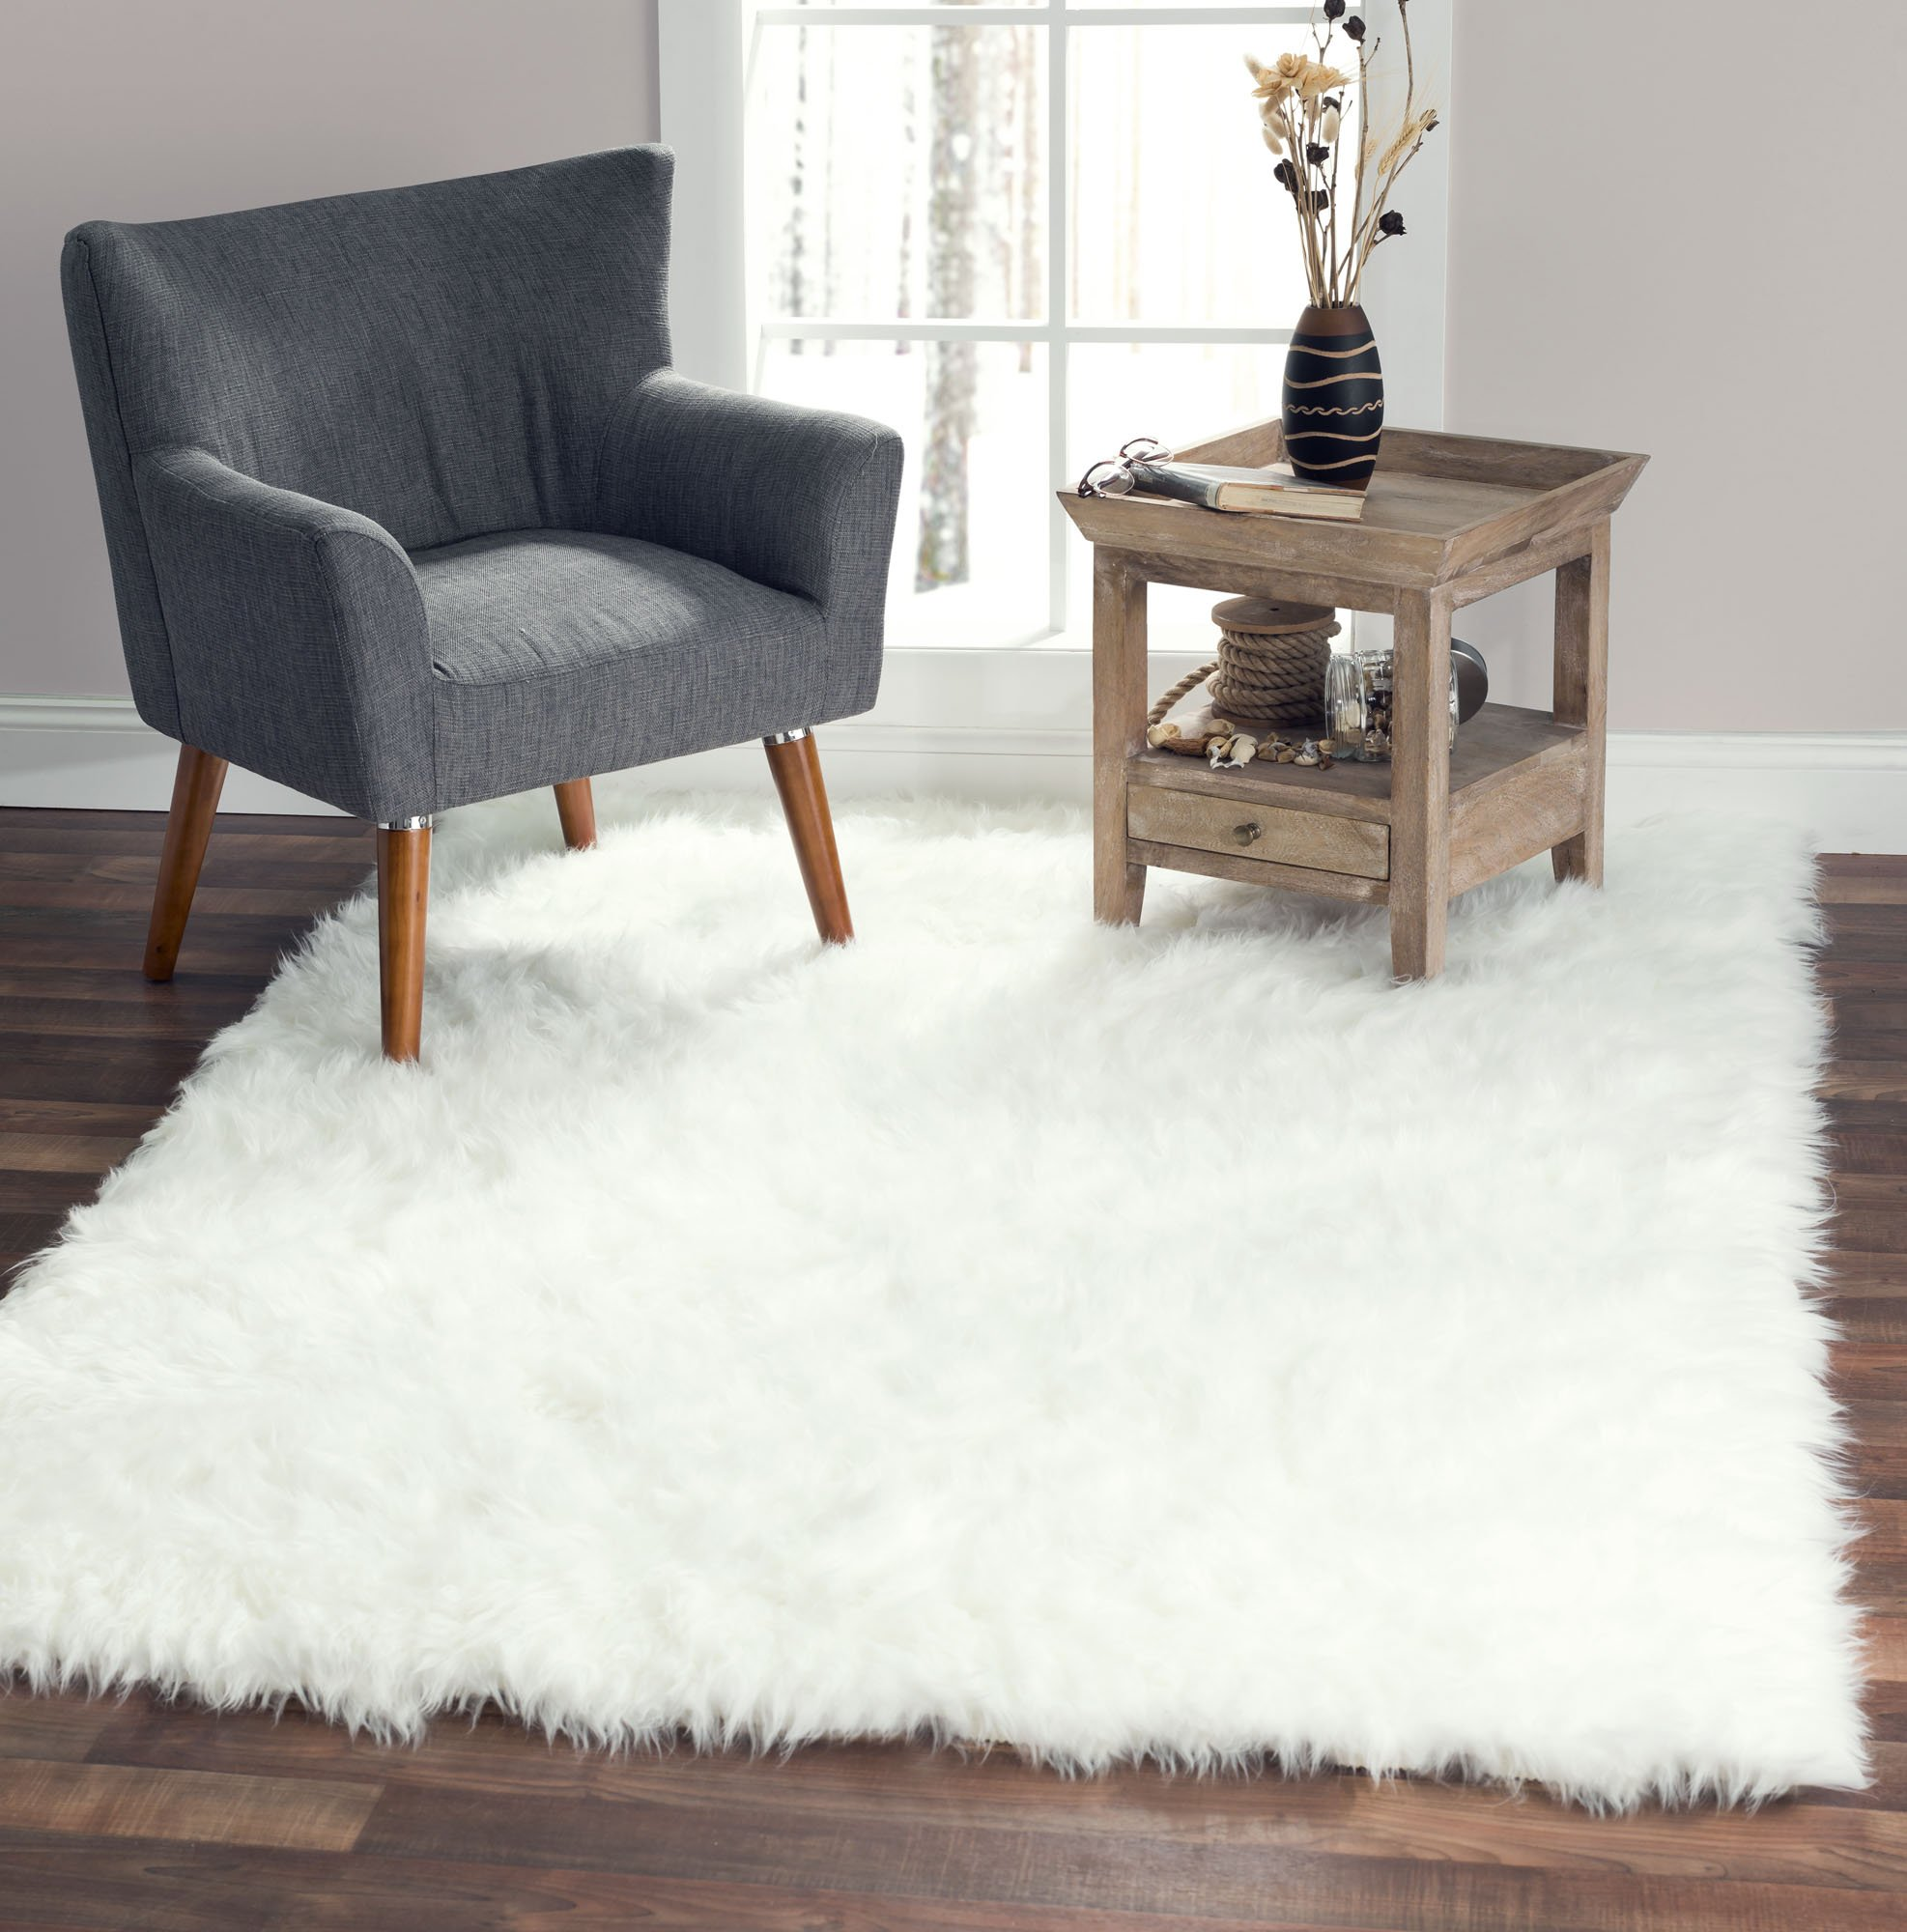 """Softest French White Sheepskin Faux Fur Shag Rug Looks Real, NO Animal Cruelty. Perfect for Photographers Designers or Your Bedroom Living Room or Nursery Made in France 5x7 (55 inches x 79 inches) - OOOH LA LA – FLUFFIEST, PLUSHEST HIGH PILE Faux Sheepskin Rug: If you're looking for the SILKIEST, SOFTEST rugs for your living room – a sheep skin area rug so plush it MAKES YOU FEEL LIKE YOU'RE PETTING an ARCTIC POLAR BEAR - then you'll want to consider this 5x7 rug a top contender. Just look at the reviews and you'll quickly discover why customers say, """"THE PICTURES DON'T DO IT JUSTICE!"""" It's GORGEOUS and piled just high enough to make it enjoyable to lounge on, without the tricky clean-up. FEELS & LOOKS AUTHENTIC, WITHOUT THE CRUELTY: Remember the last time you walked into a space and it felt…well…perfect? Fashion-forward thinkers realize how that one item, one unique thing, and in this case one genuine looking sheepskin shag carpet easily PULLS YOUR DECOR TOGETHER – giving it a wealthy, luxurious ambiance, WITHOUT THE GUILT of harming sweet little animals. STYLISH YET SIMPLE – THE TOP CHOICE of PHOTOGRAPHY STUDIOS & INTERIOR DESIGNERS: If you've done you research you already know that no shaggy rug holds a candle to ours – with more 5-star reviews from professional photographers than any other it's no wonder our shag area rugs are top sellers among those who appreciate FINE DETAIL and only choose the best. And they love how it WON'T PEEL, SHED EXCESSIVELY or CURL UP AT THE ENDS, GUARANTEED! - living-room-soft-furnishings, living-room, area-rugs - 81f5H5V8pOL -"""